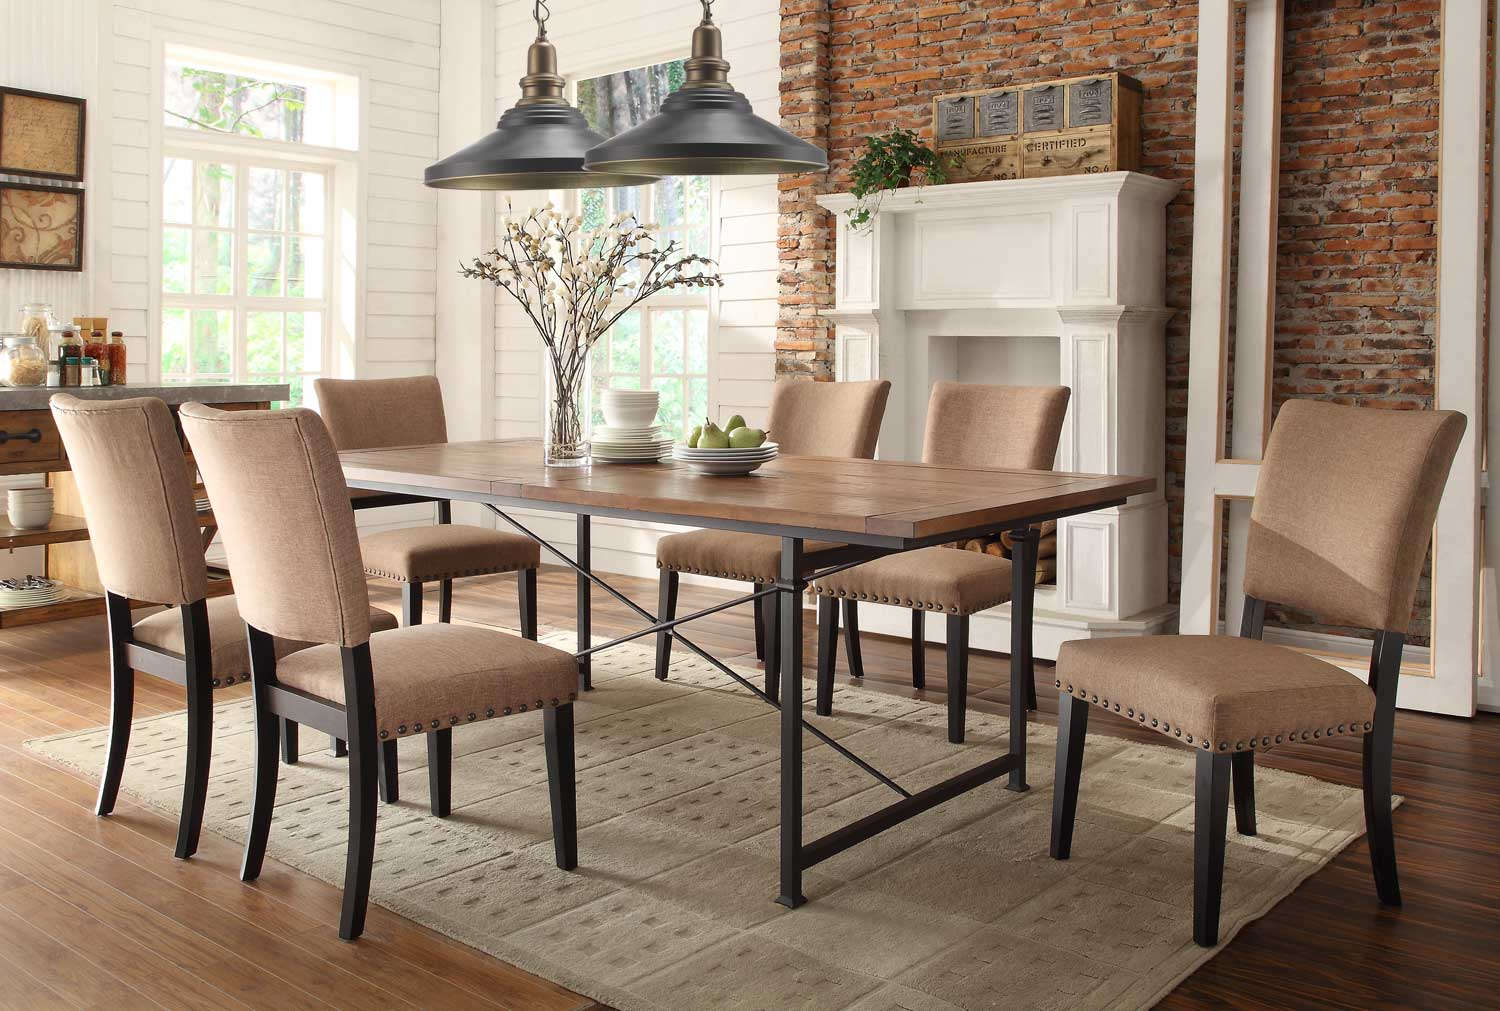 Homelegance Derry Dining Set - Rustic Oak